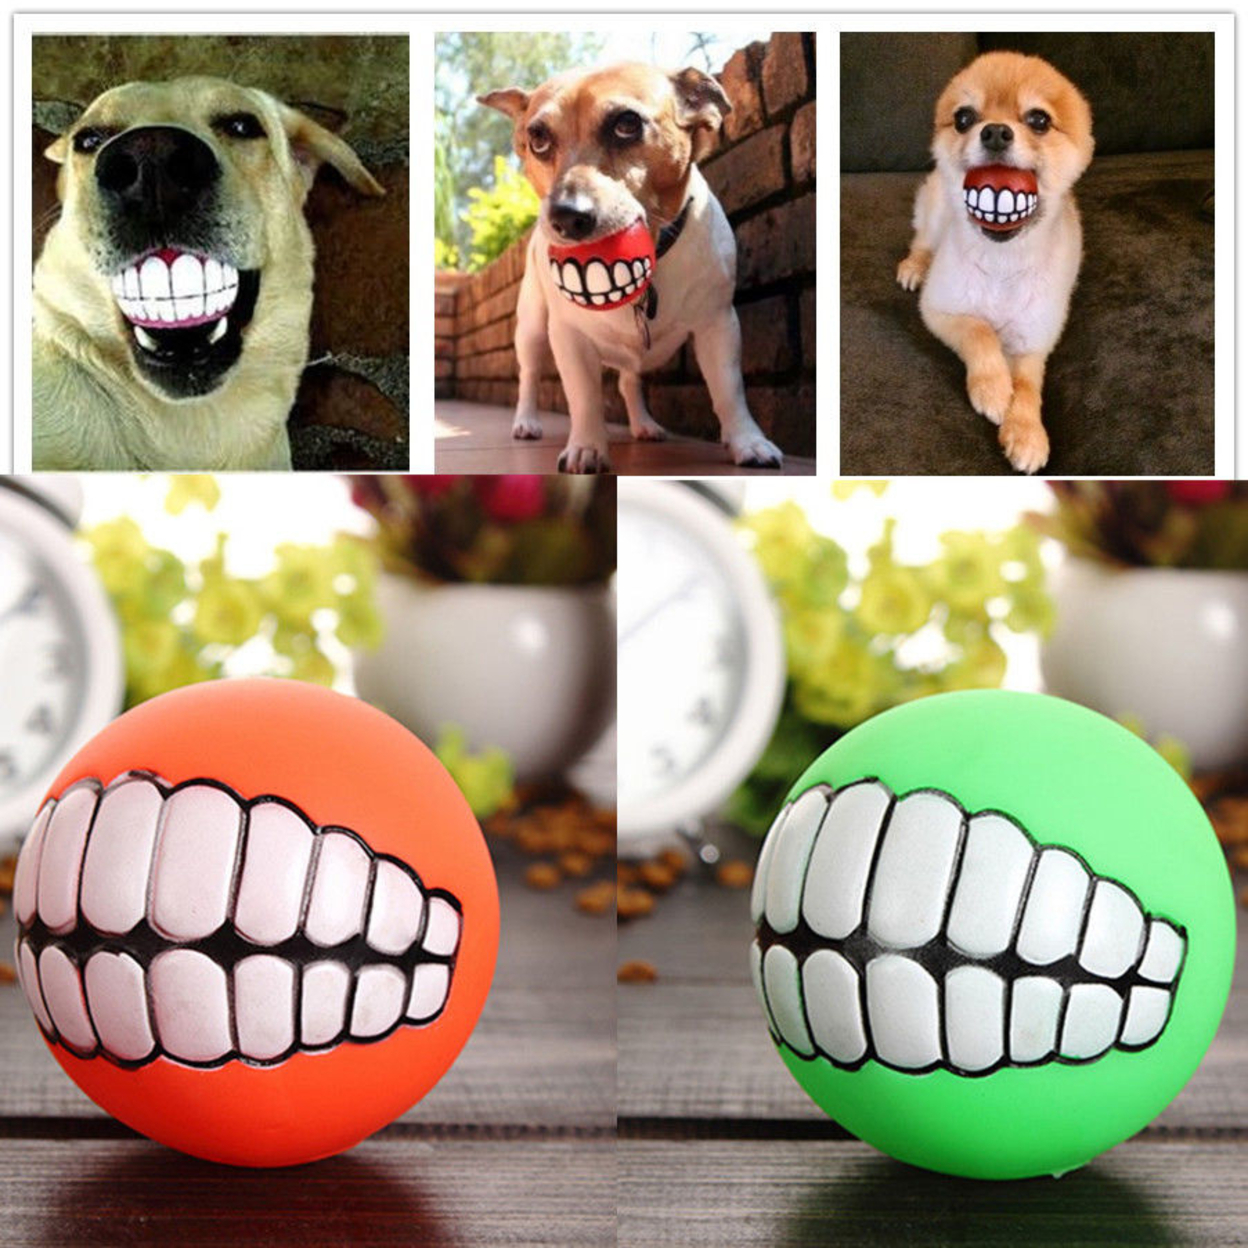 Pet Puppy Dog Funny Ball Teeth Silicone Toy Chew Sound Dogs Play Toys - Orange 58ed8d612c043d3878416f63